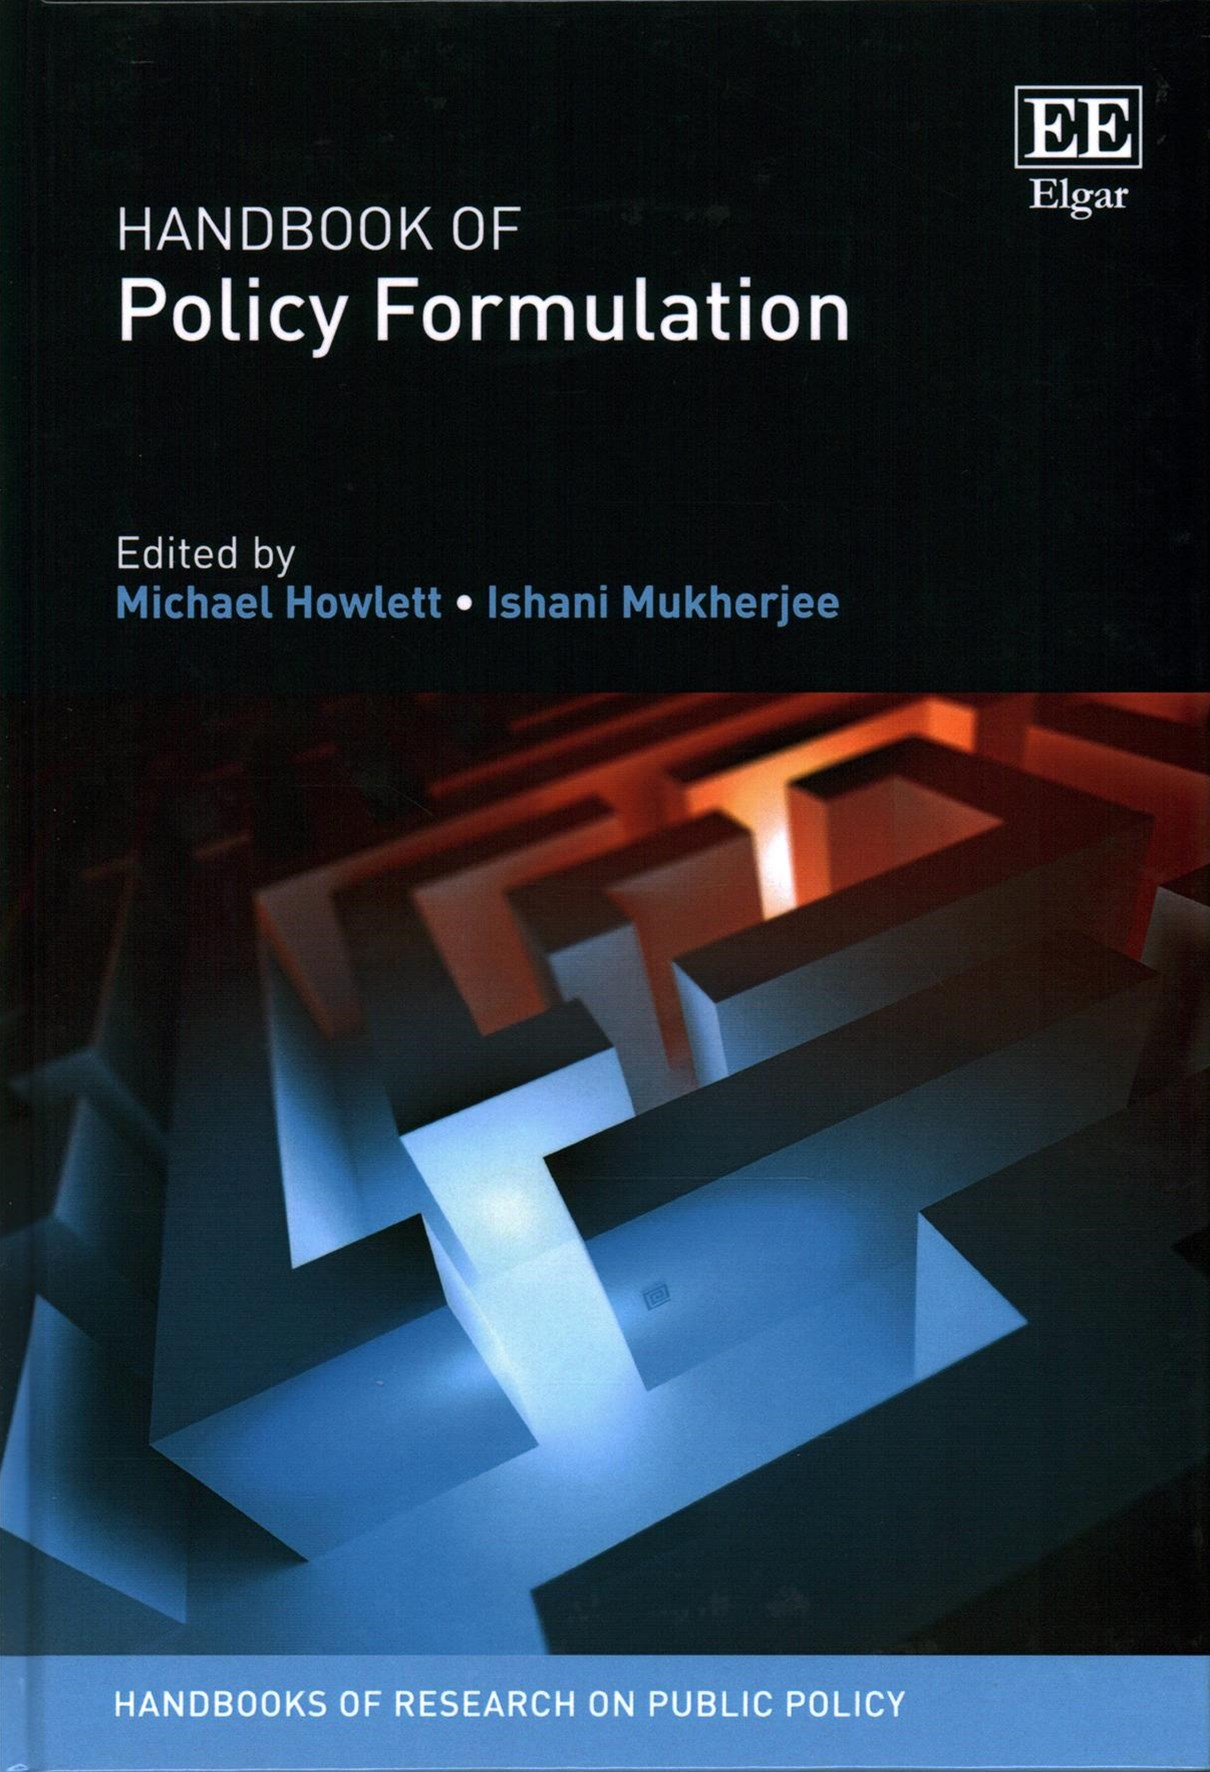 Handbook of Policy Formulation